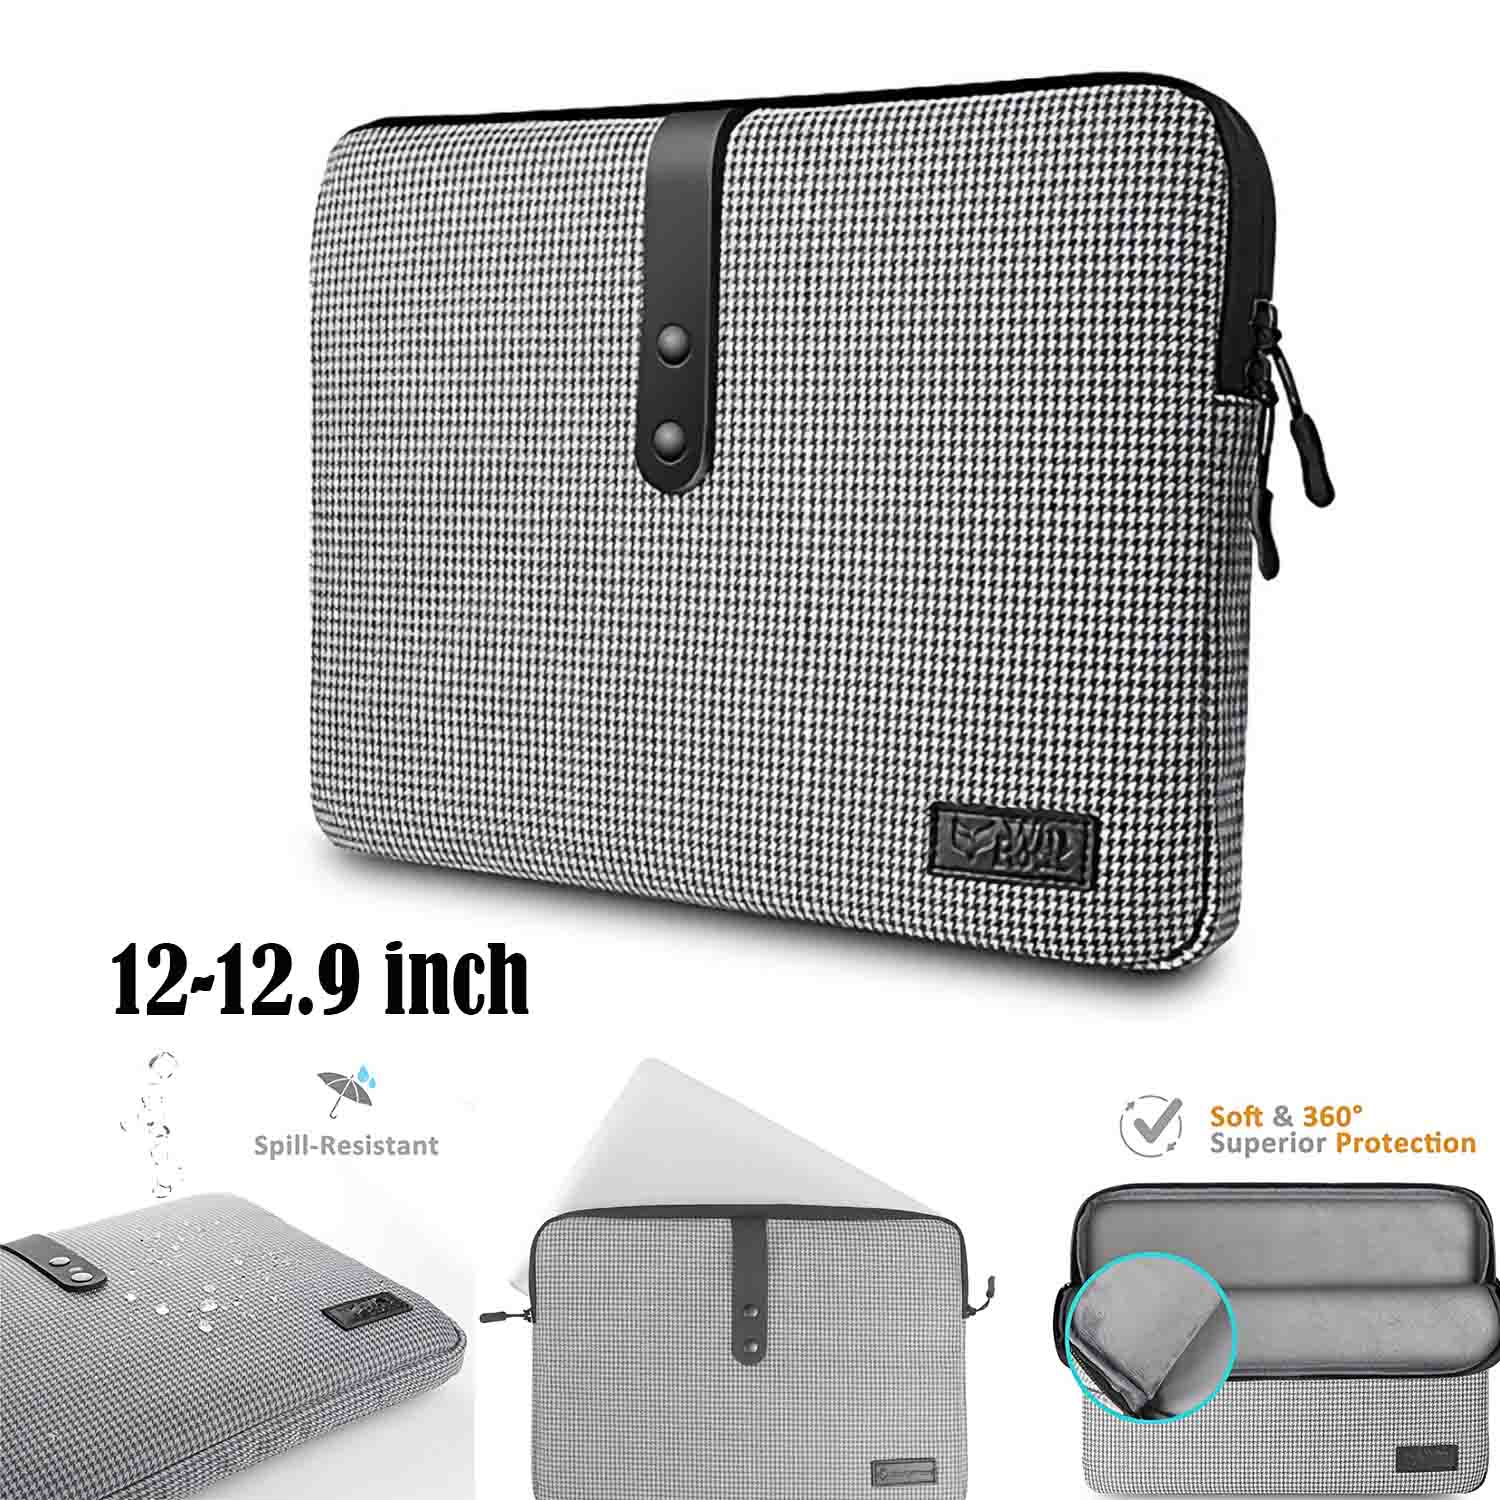 360 Protective Laptop Sleeve Case Bag Cover for Microsoft New Surface Pro 5/4/3/2/1, 11.6 Inch Ultrabook Notebook Tablet, Spill-Resistant, Support up to 11.5 x 7.93 In